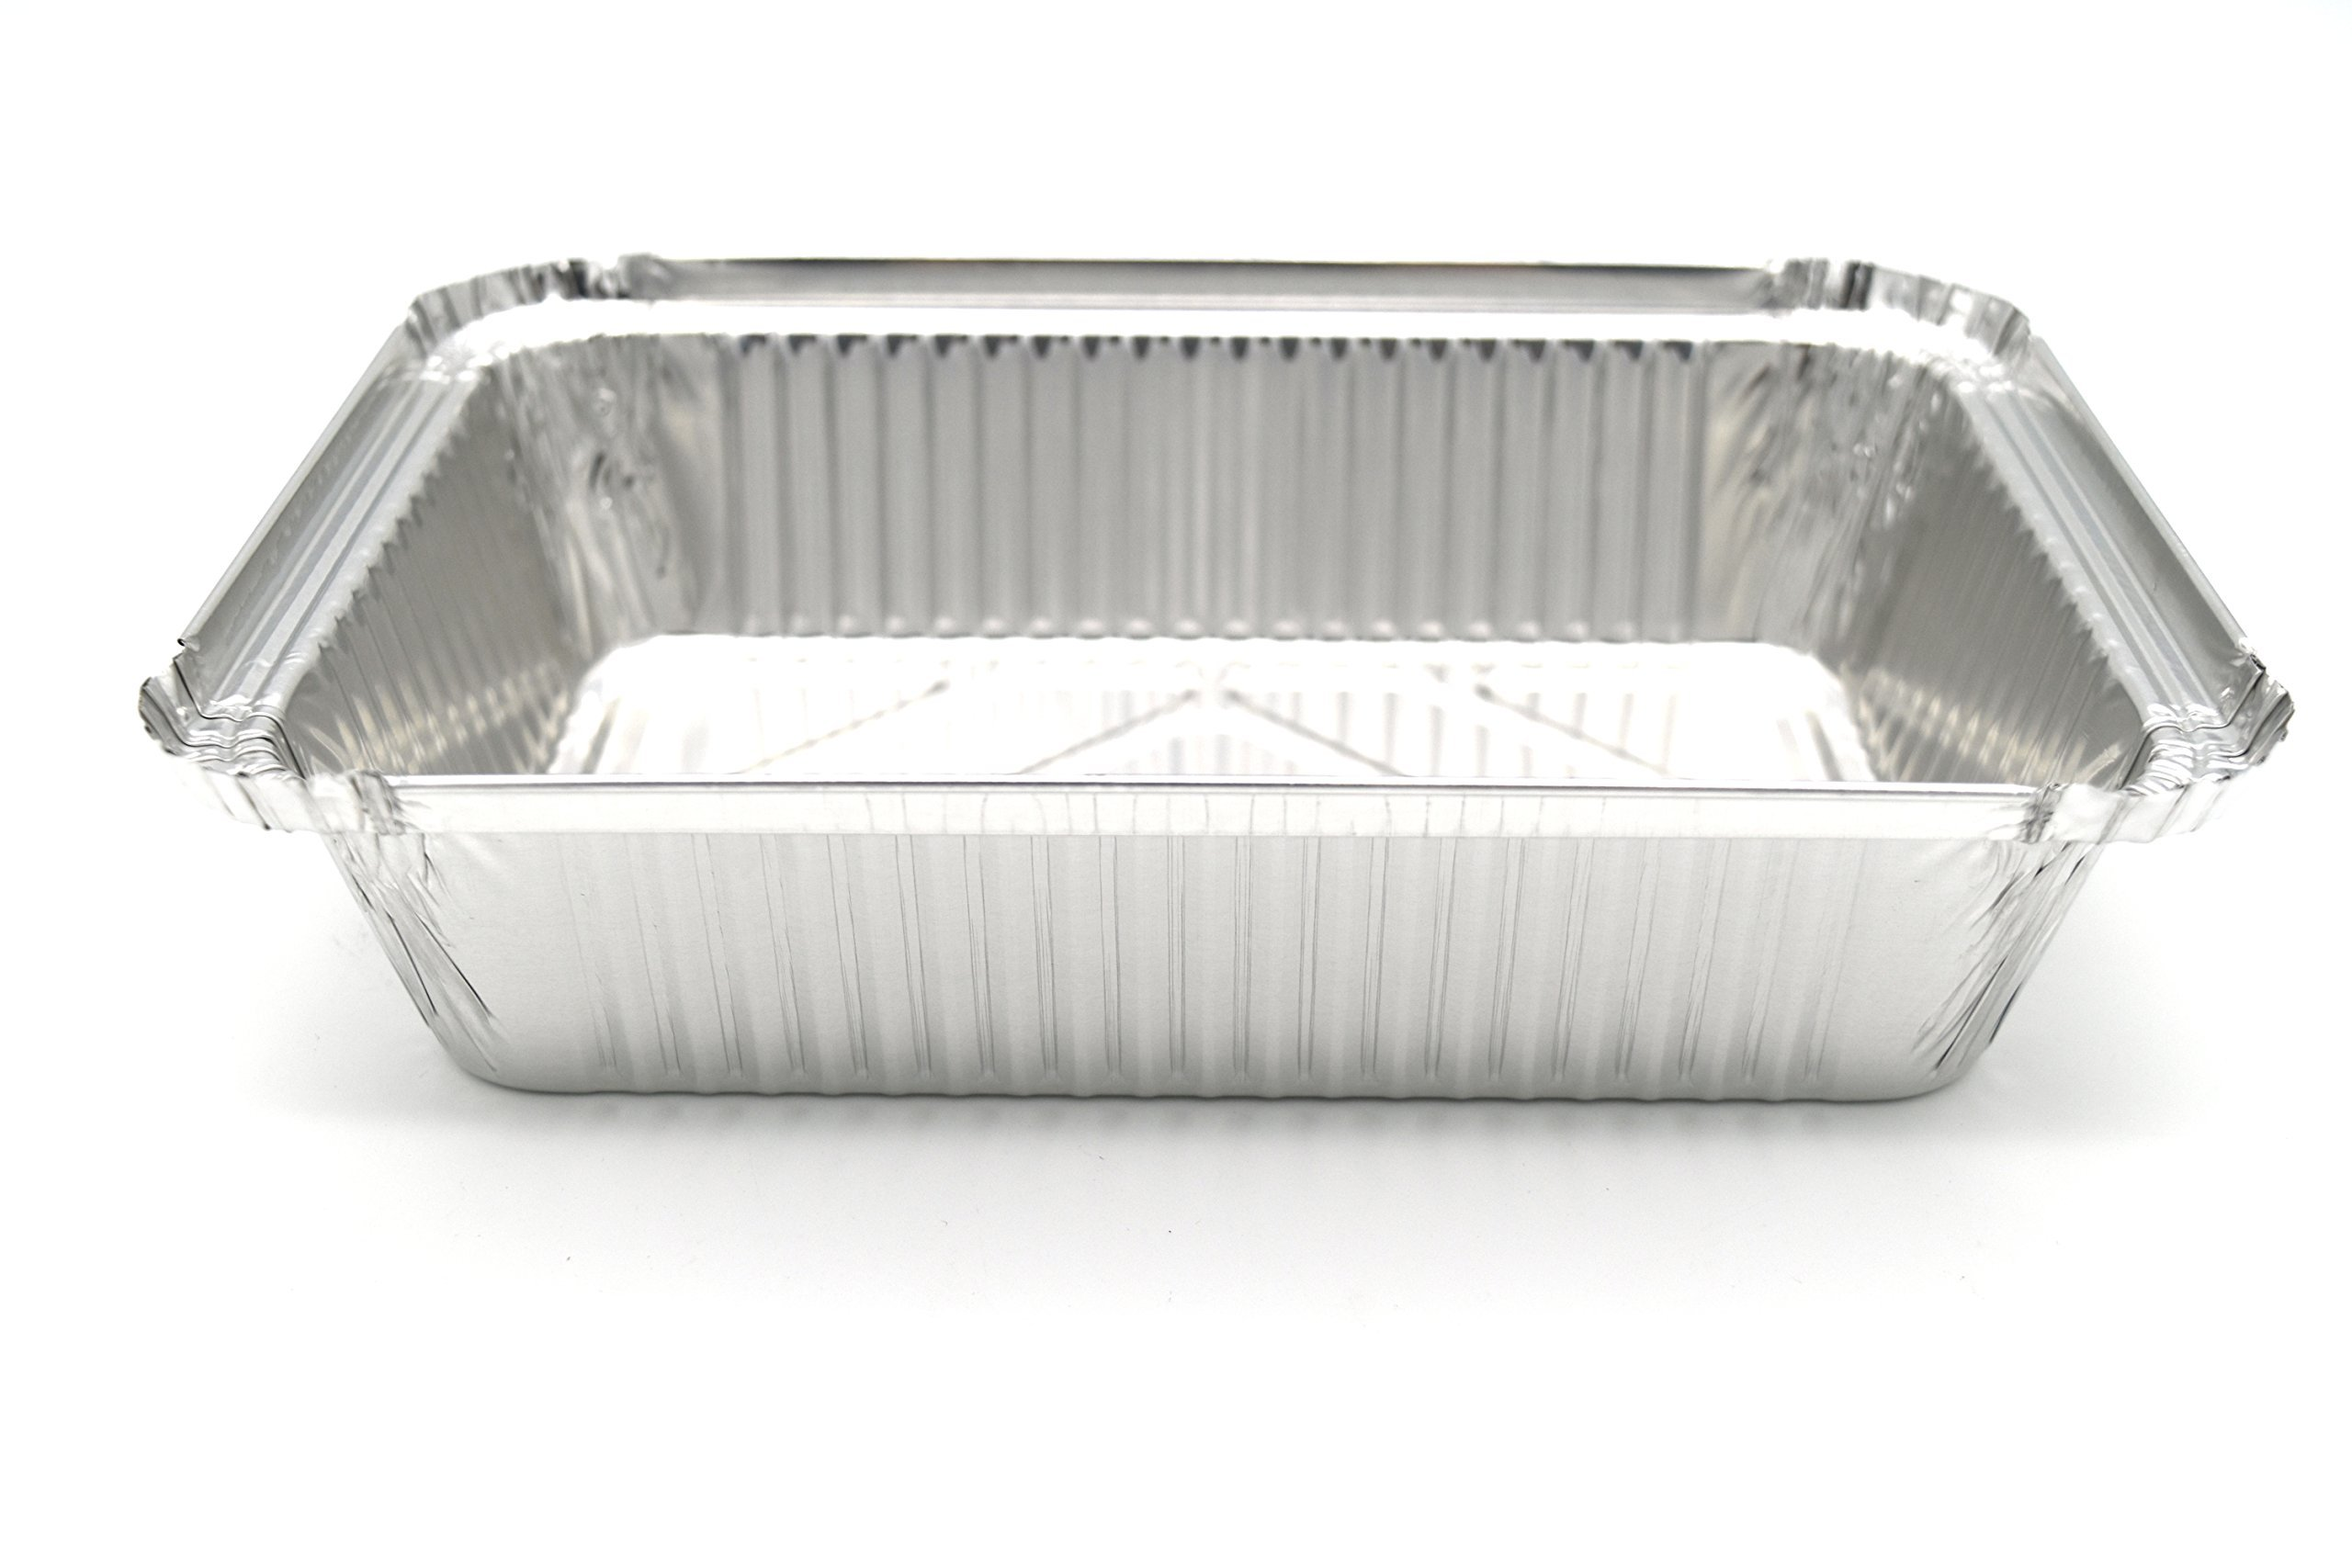 Fig & Leaf (120 Pack) Premium 2-LB Takeout Pans with LIDS l Standard 8.6'' x 6.1'' x 2'' l Top Choice Disposable Aluminum Foil for Catering Party Meal Prep Freezer Drip Pans BBQ Potluck Holidays by Fig & Leaf (Image #4)